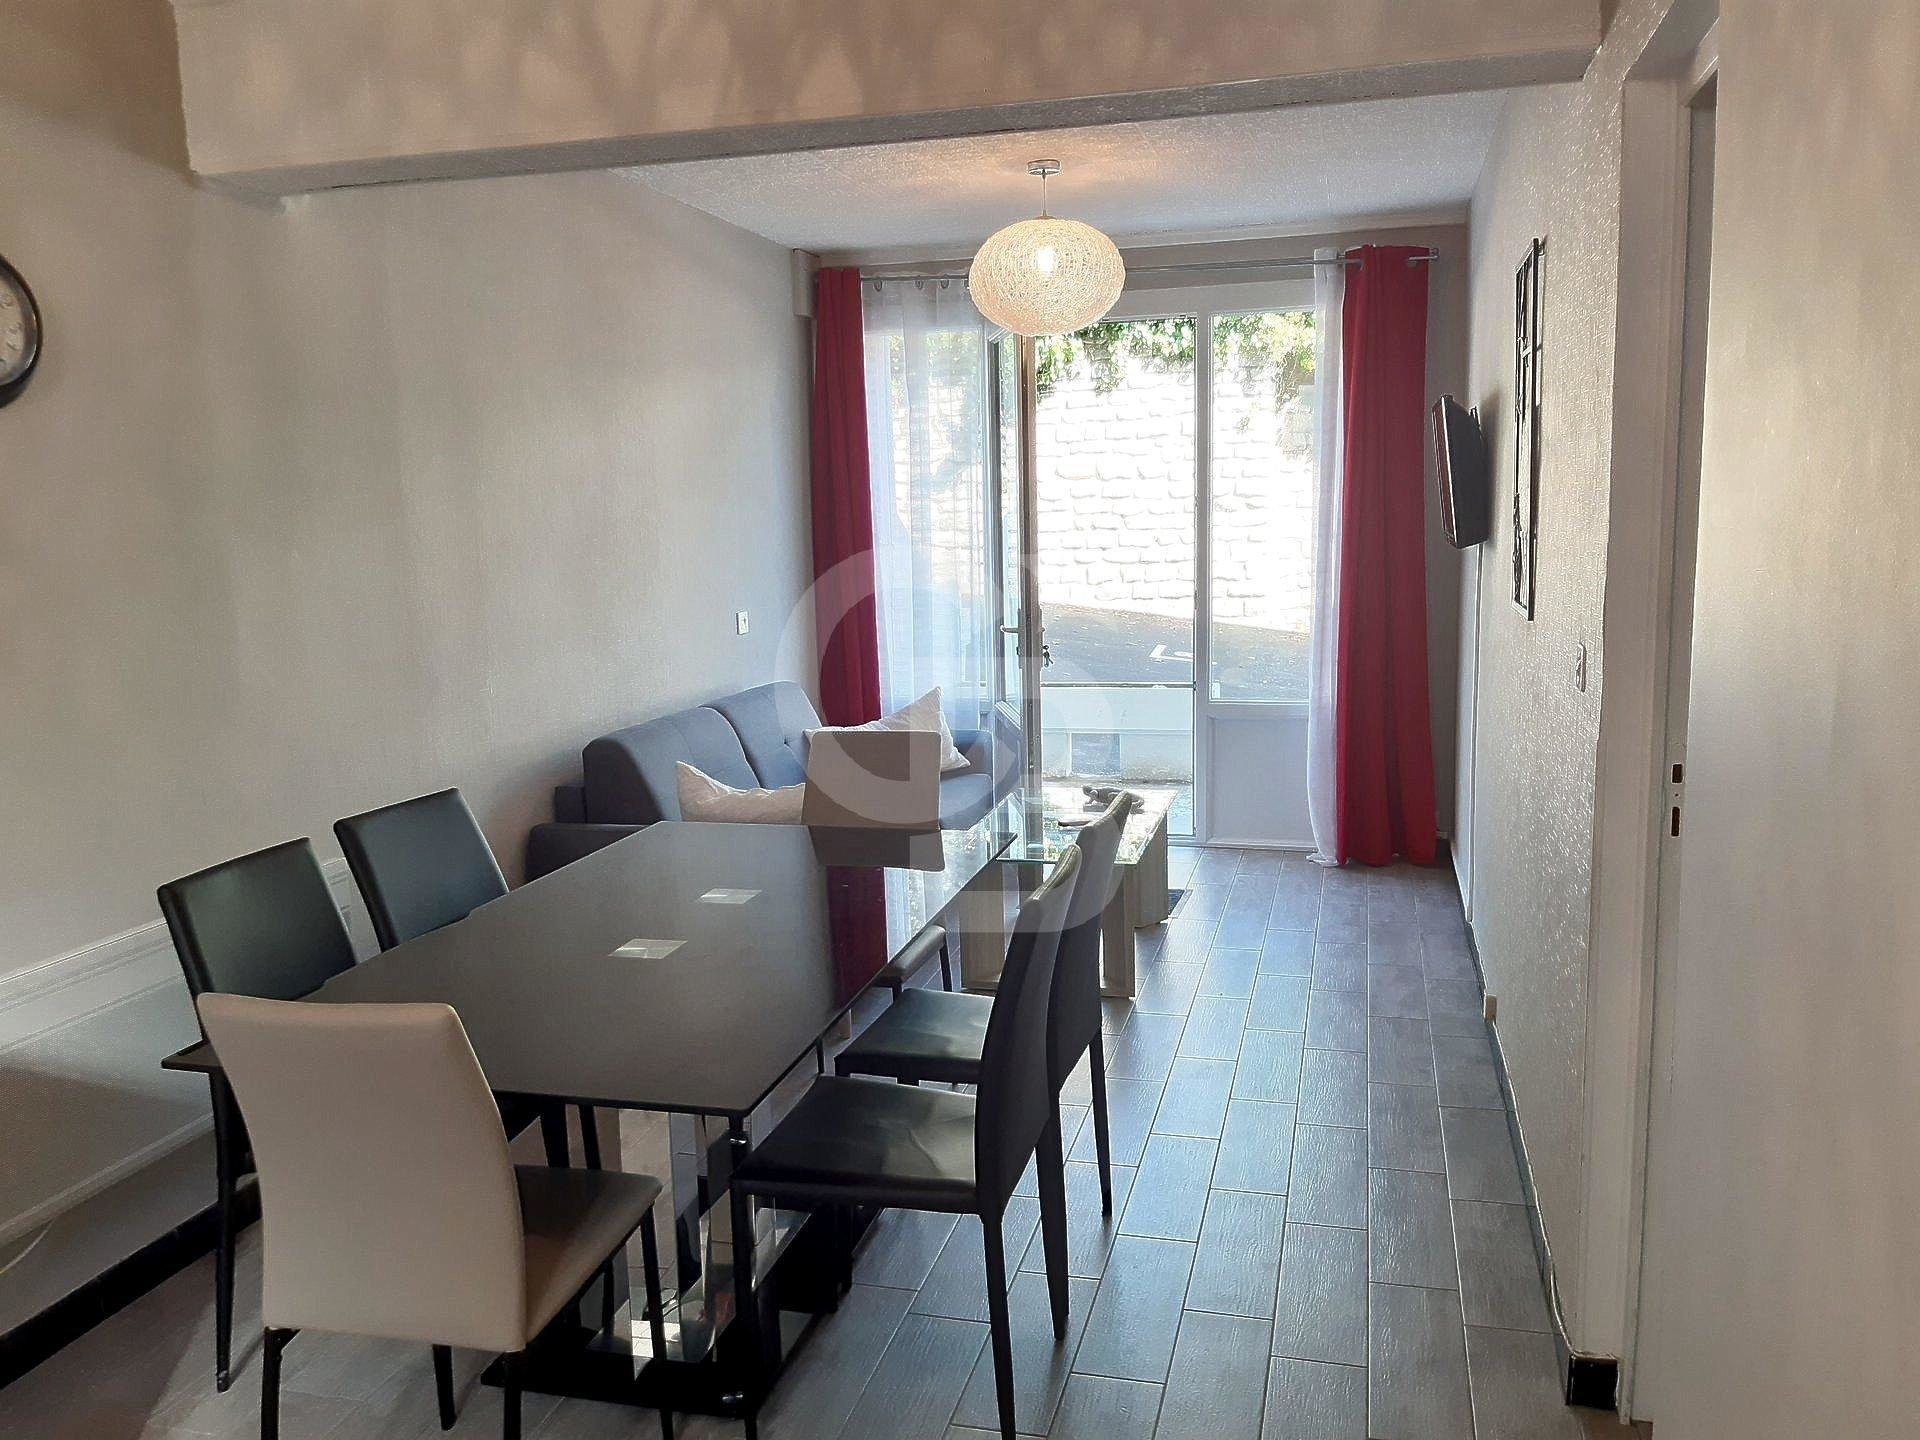 Apartment for Sale in Royan - ground floor